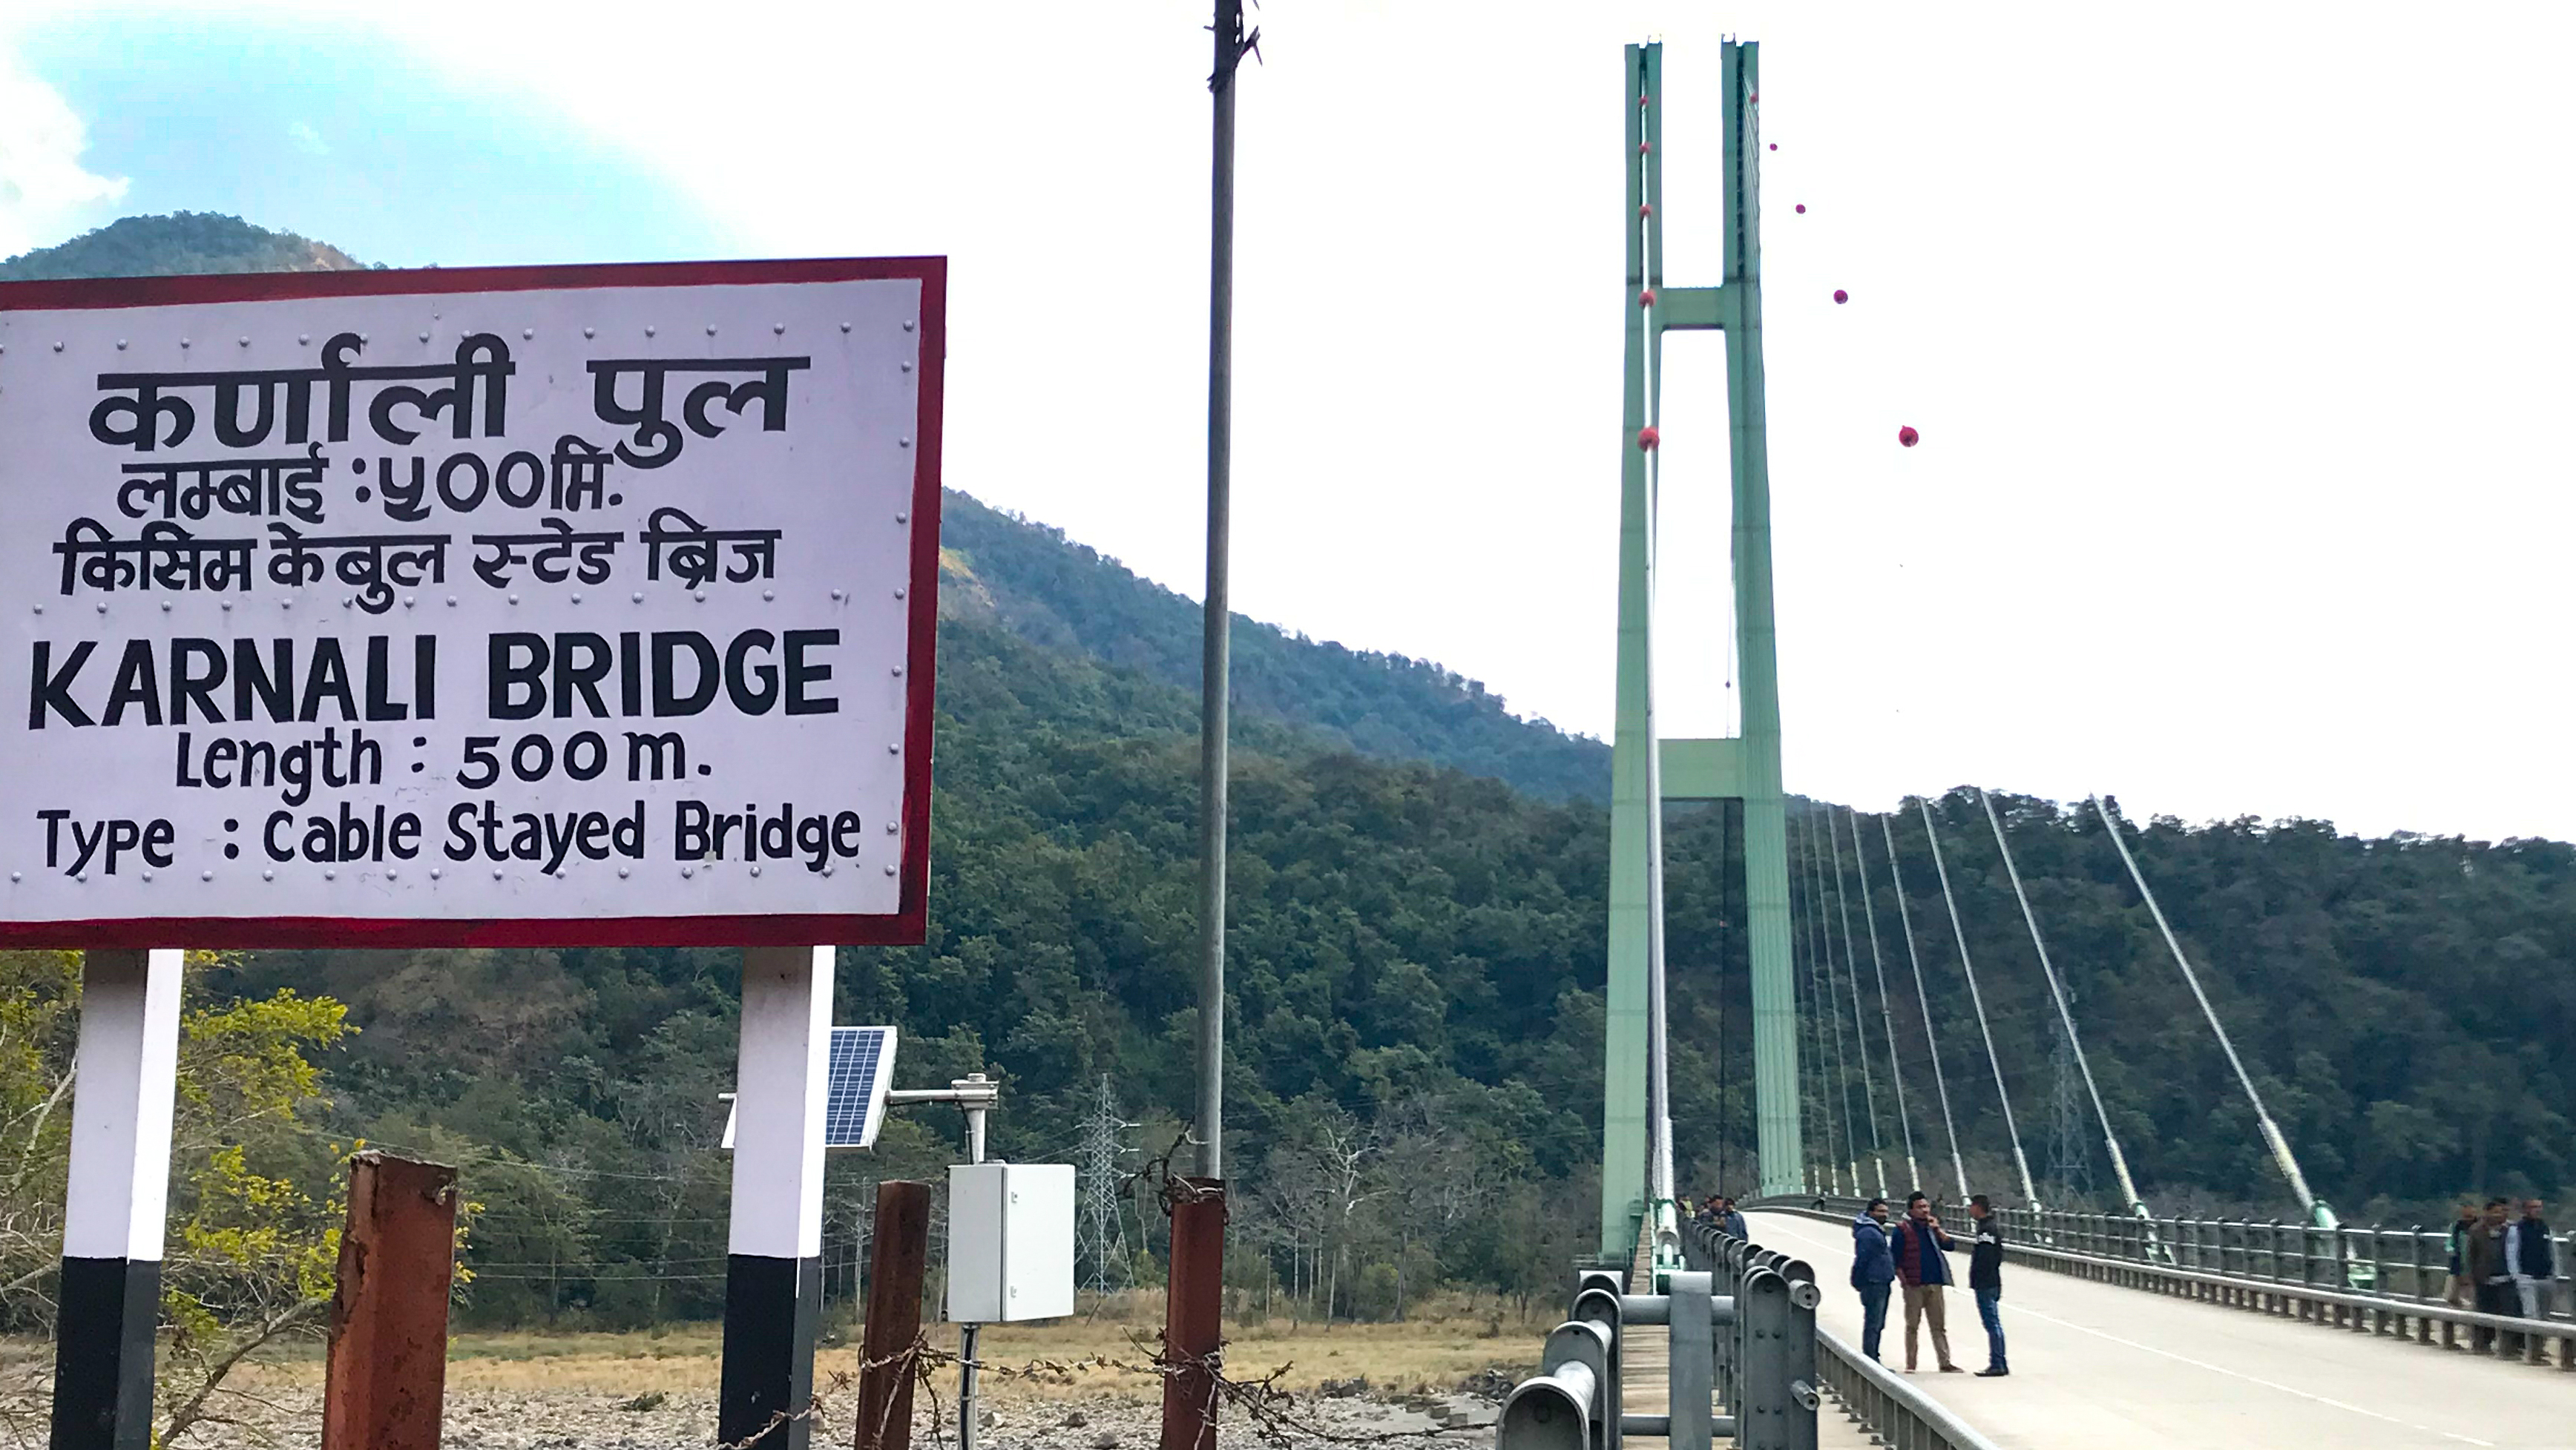 Length of Karnali Bridge, karnali bridge in nepal karnali bridge location karnali bridge length karnali bridge made by karnali bridge facts karnali bridge metres long about karnali bridge who built karnali bridge karnali bridge chisapani karnali chisapani bridge nepal karnali-chisapani bridge chanod karnali bridge karnali-chisapani bridge lamki chuha नेपाल karnali geruwa bridge length of karnali bridge in nepal karnali bridge nepal karnali bridge nepal photo bridge of karnali karnali bridge photo karnali river bridge